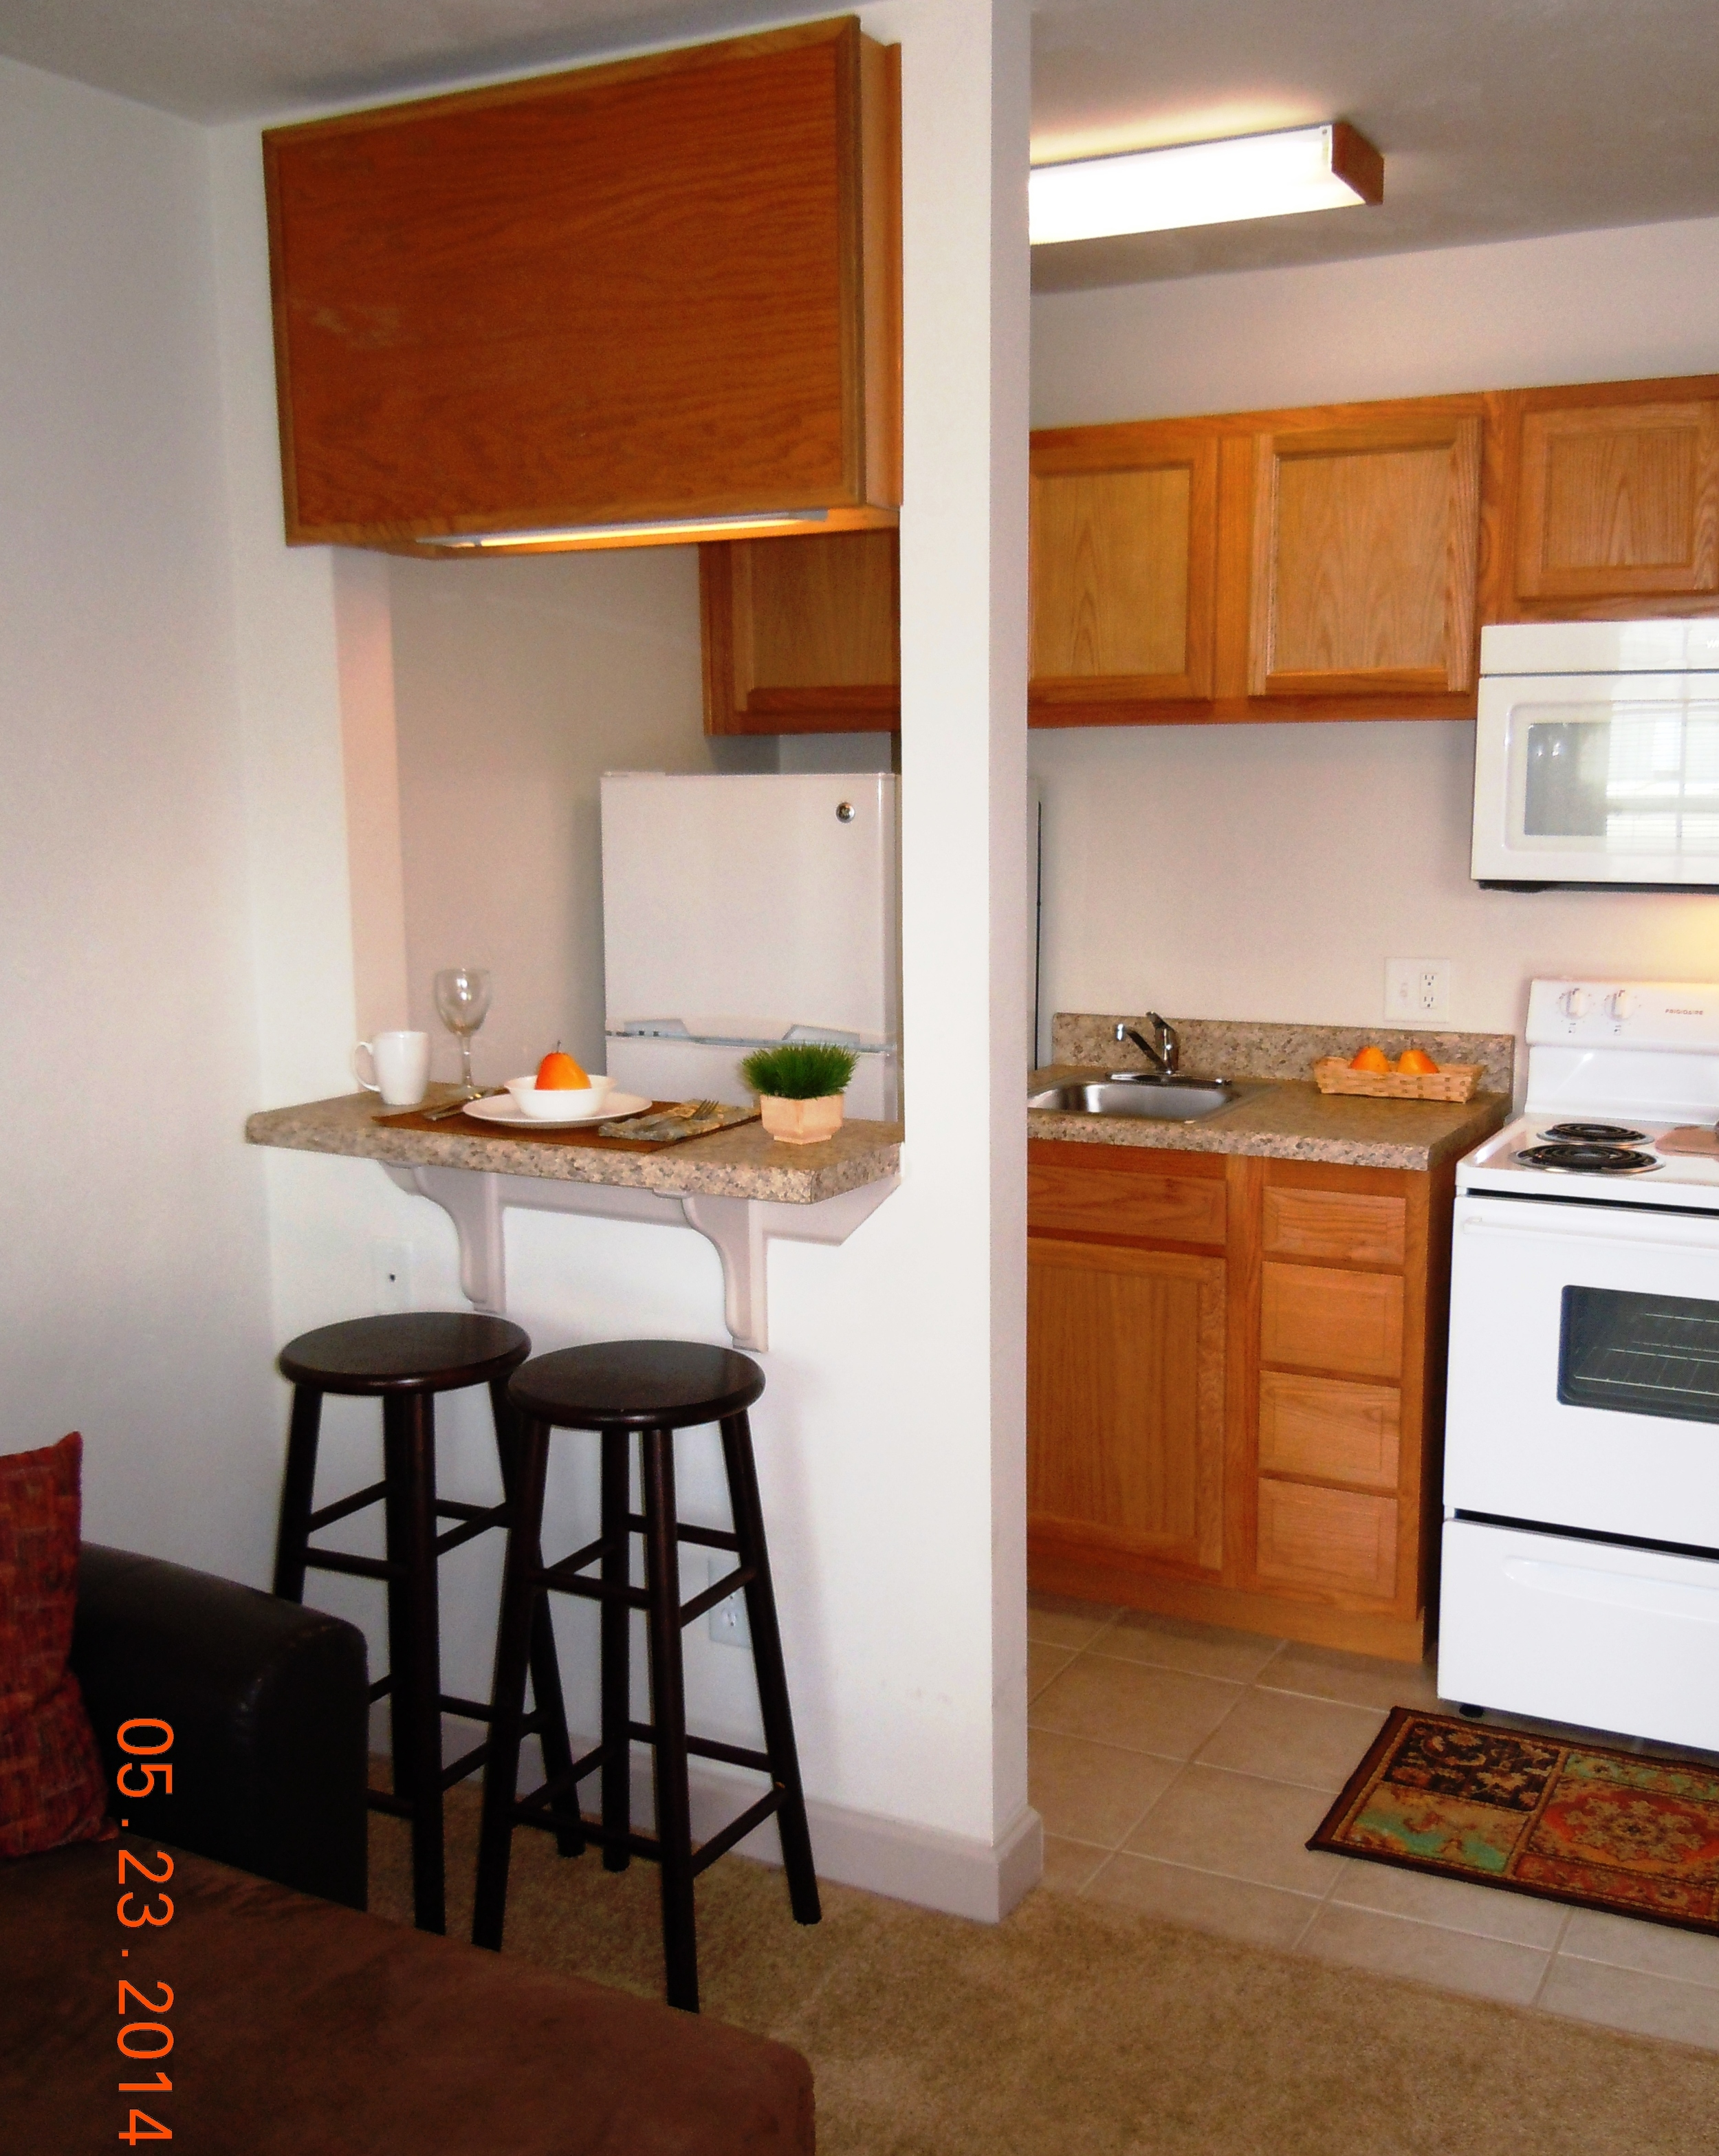 Apartment Guide Pictures (Dodi) 035.jpg